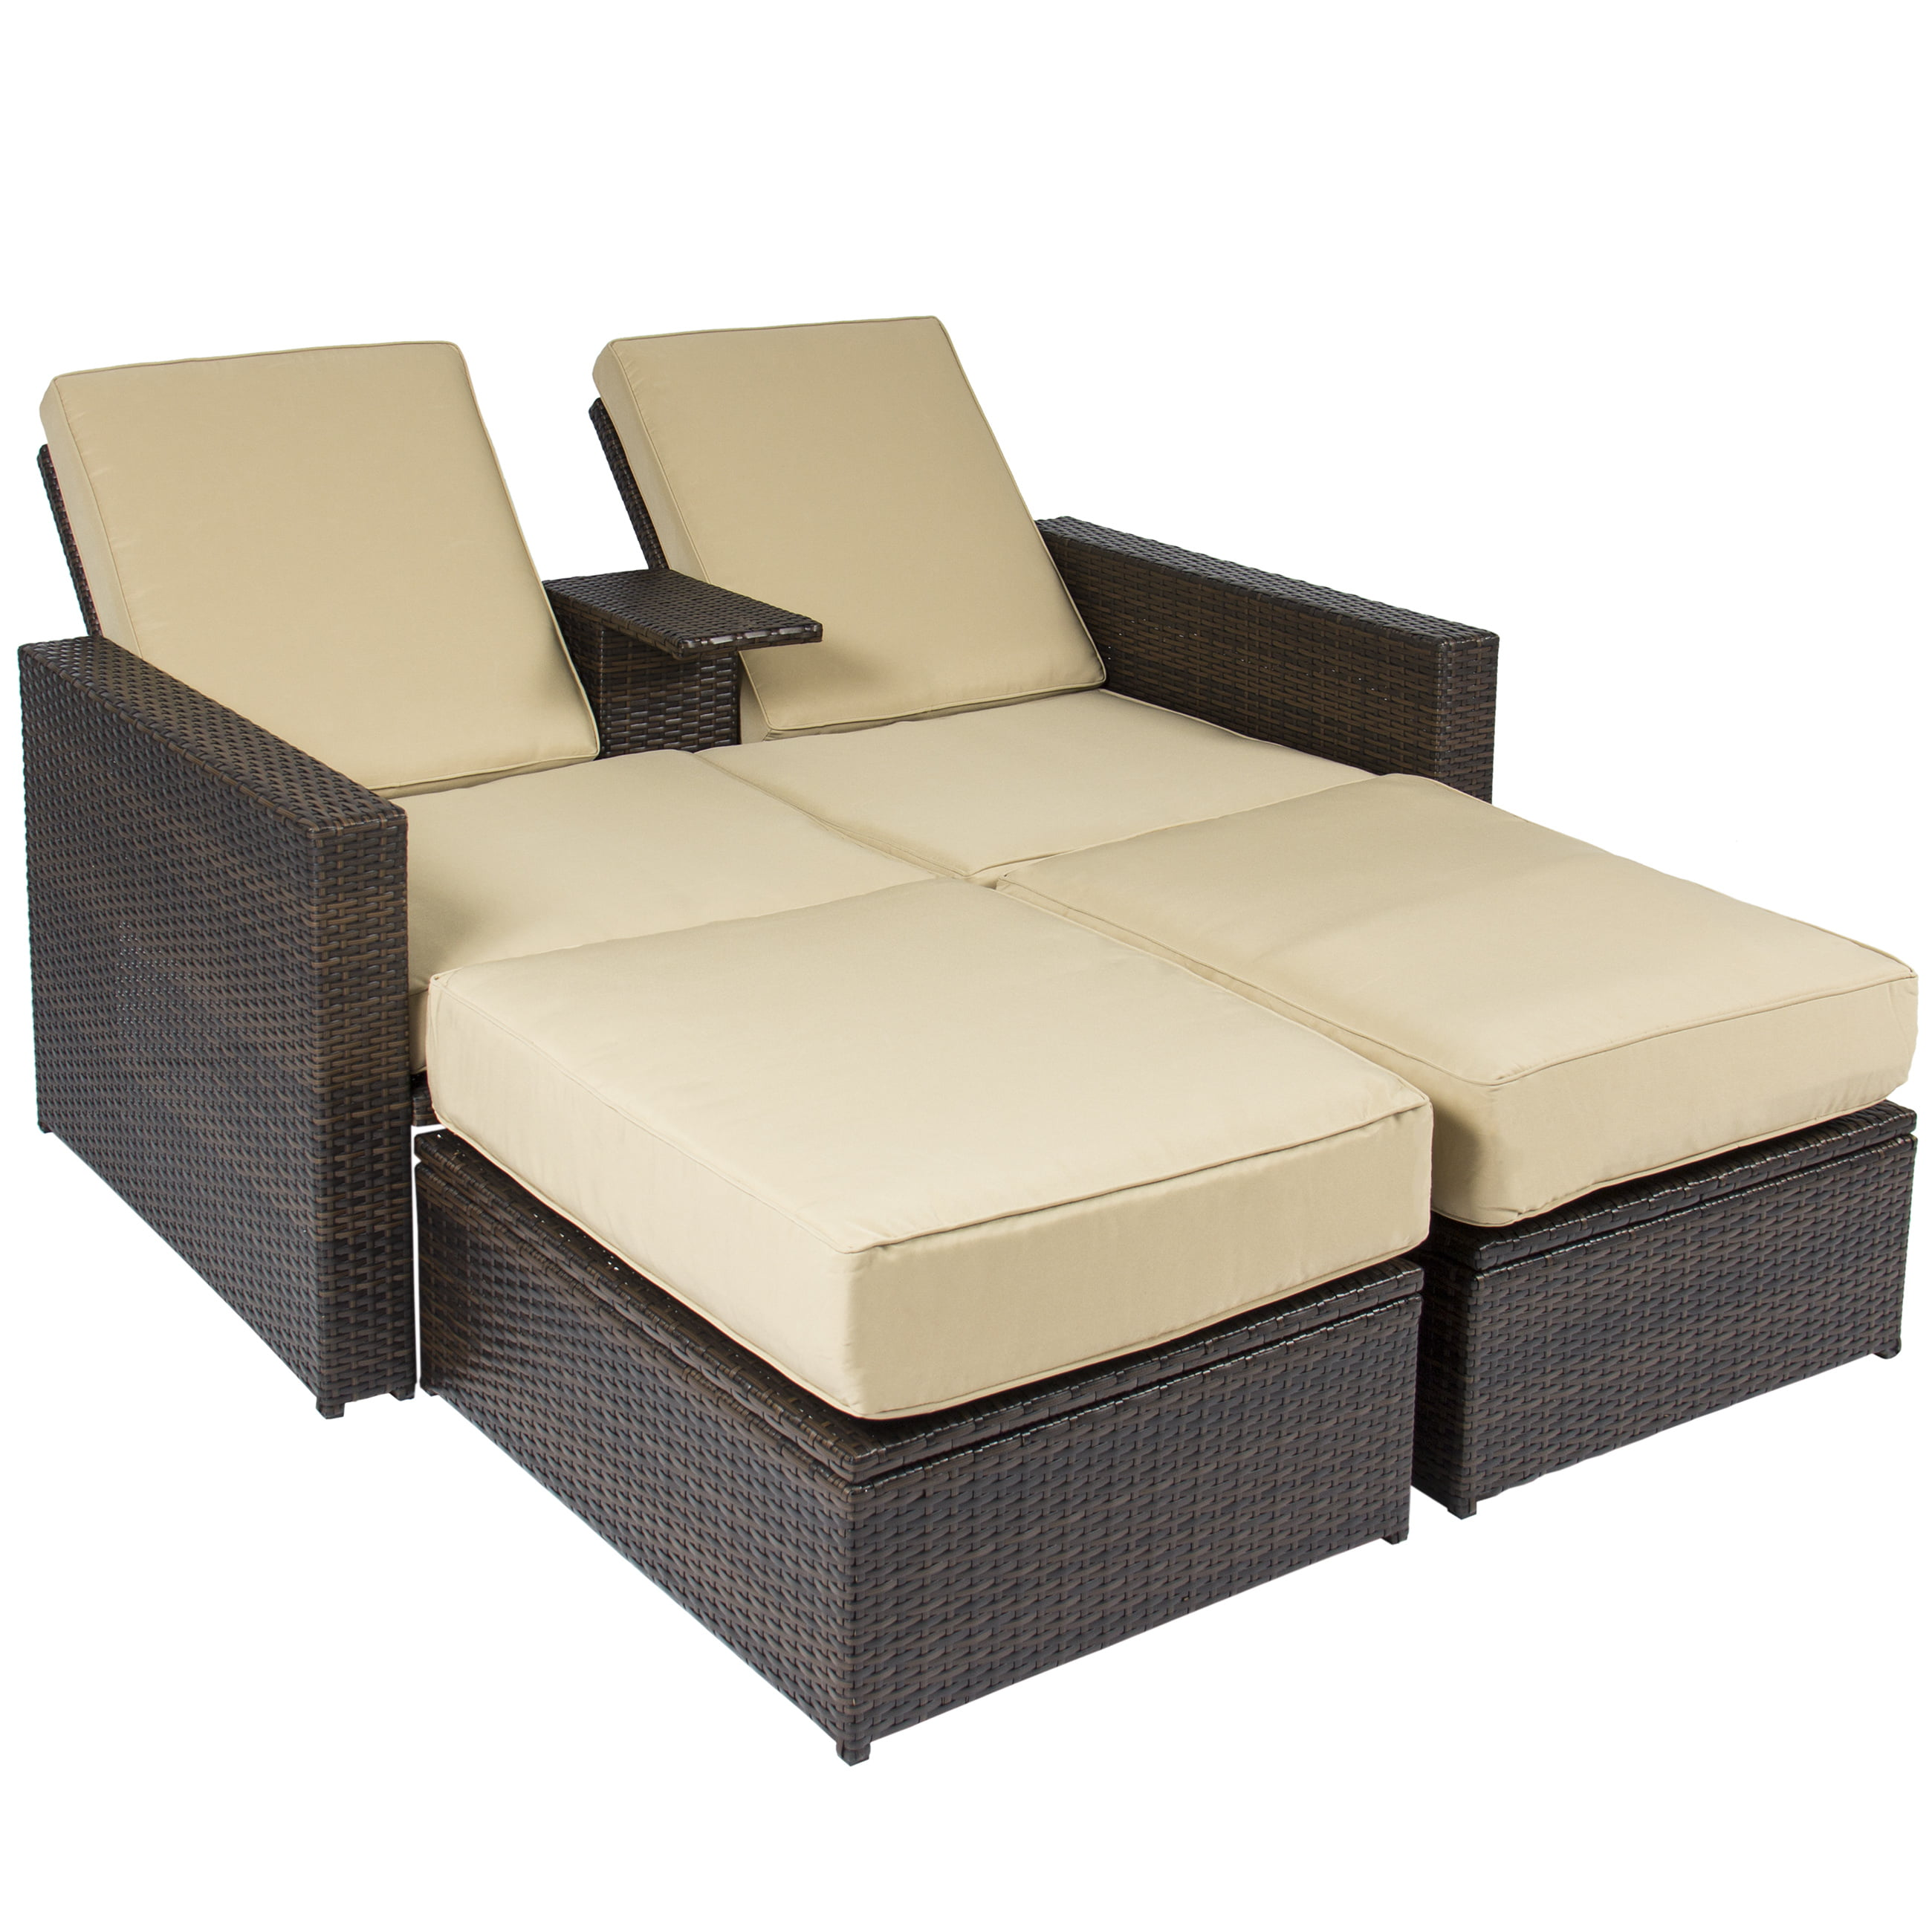 Baner Garden Outdoor Furniture Complete Patio PE Wicker Rattan Garden  Corner Sofa Couch Set, Black, 4 Pieces   Walmart.com